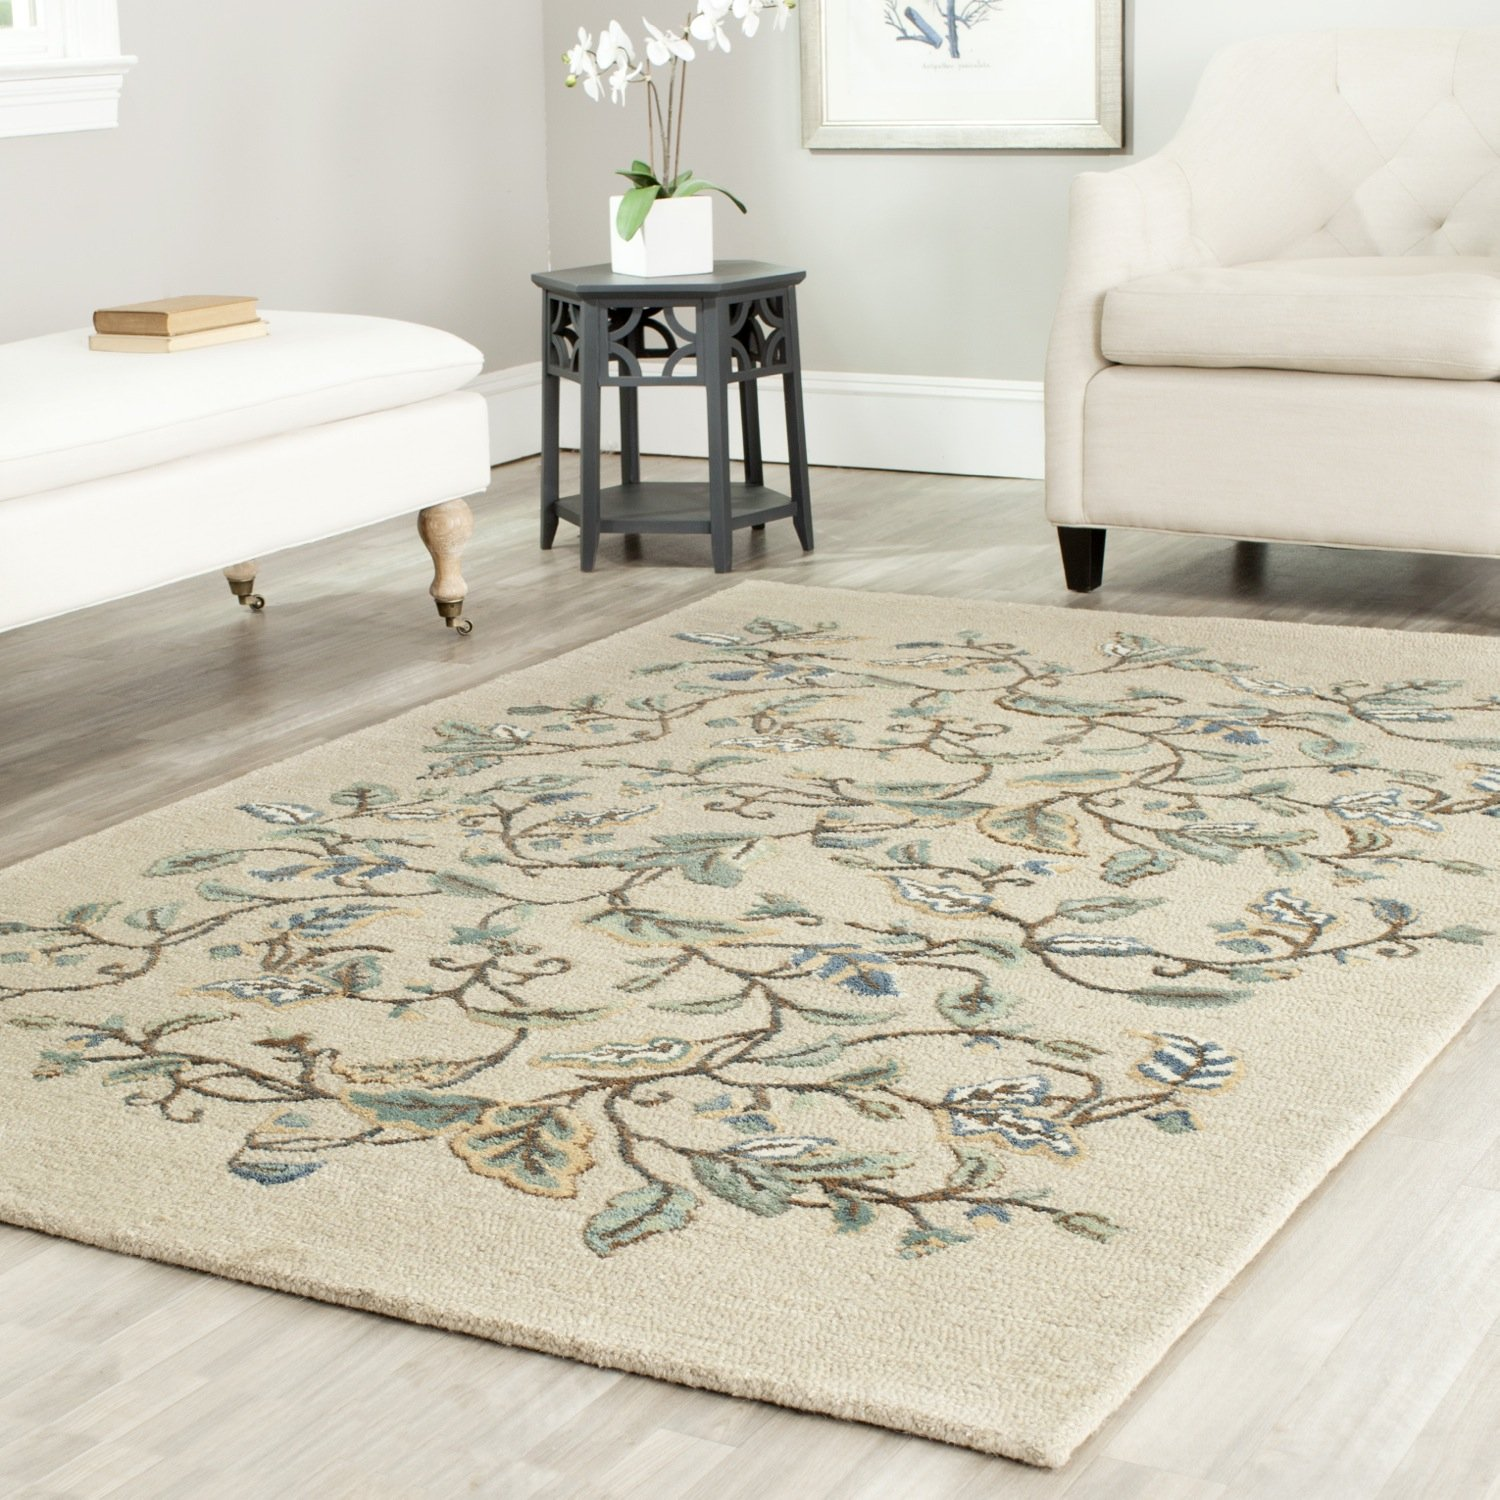 Prime Safavieh Martha Stewart Collection Msr3611C Premium Wool And Viscose Autumn Woods Colonial Blue Area Rug 5 X 8 Pabps2019 Chair Design Images Pabps2019Com